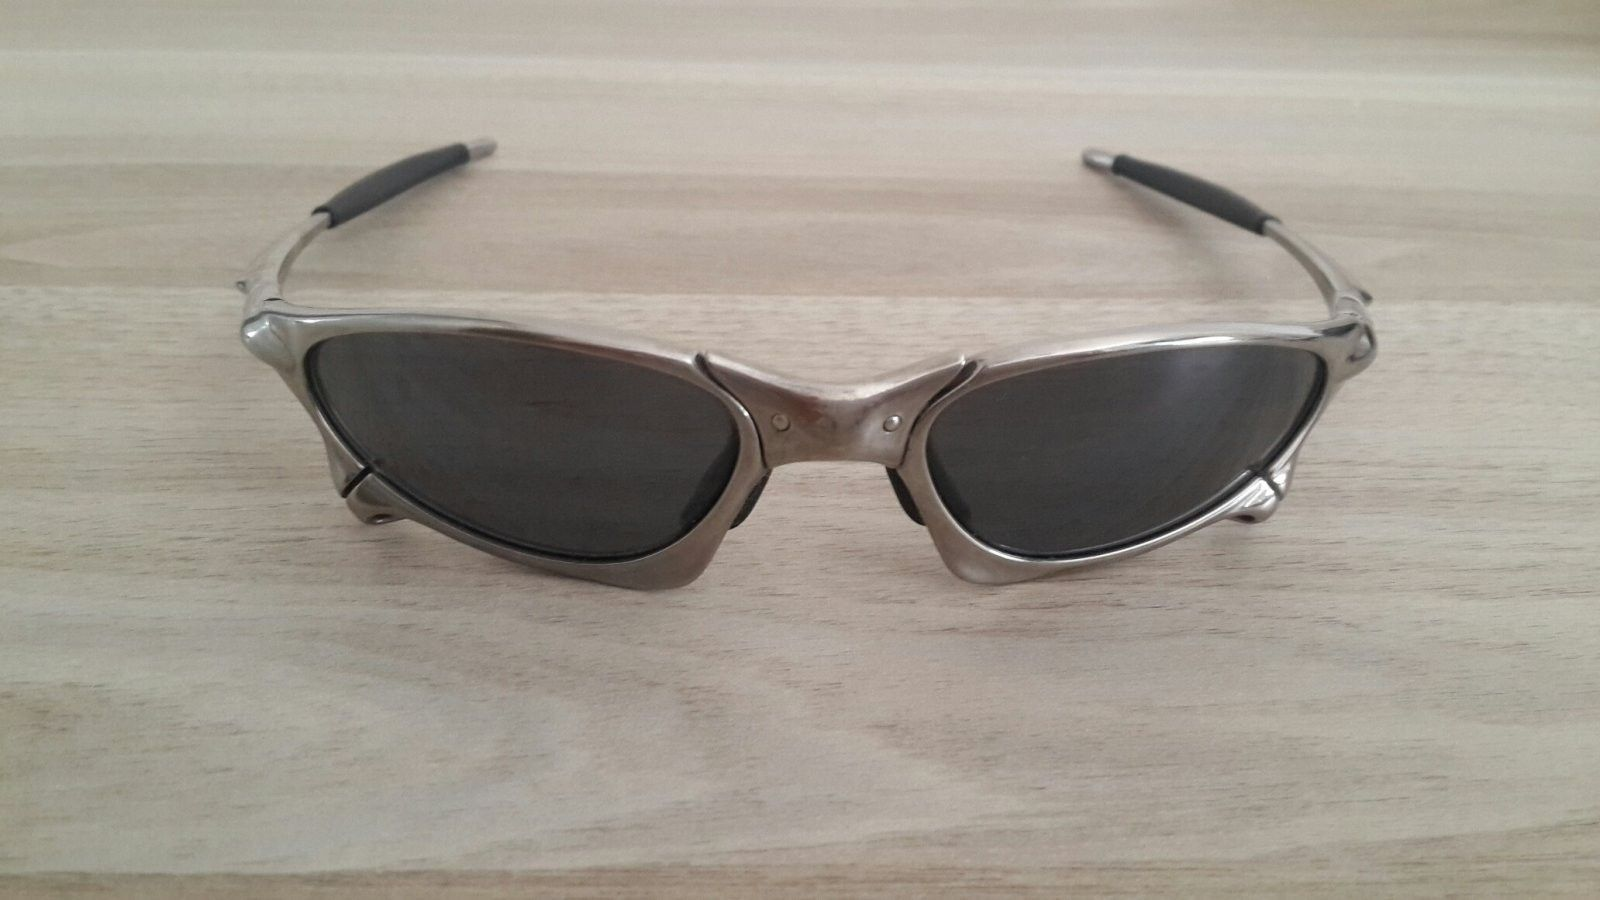 Oakley Penny Polished No Serial Number - 20141015_121706_resized.jpg